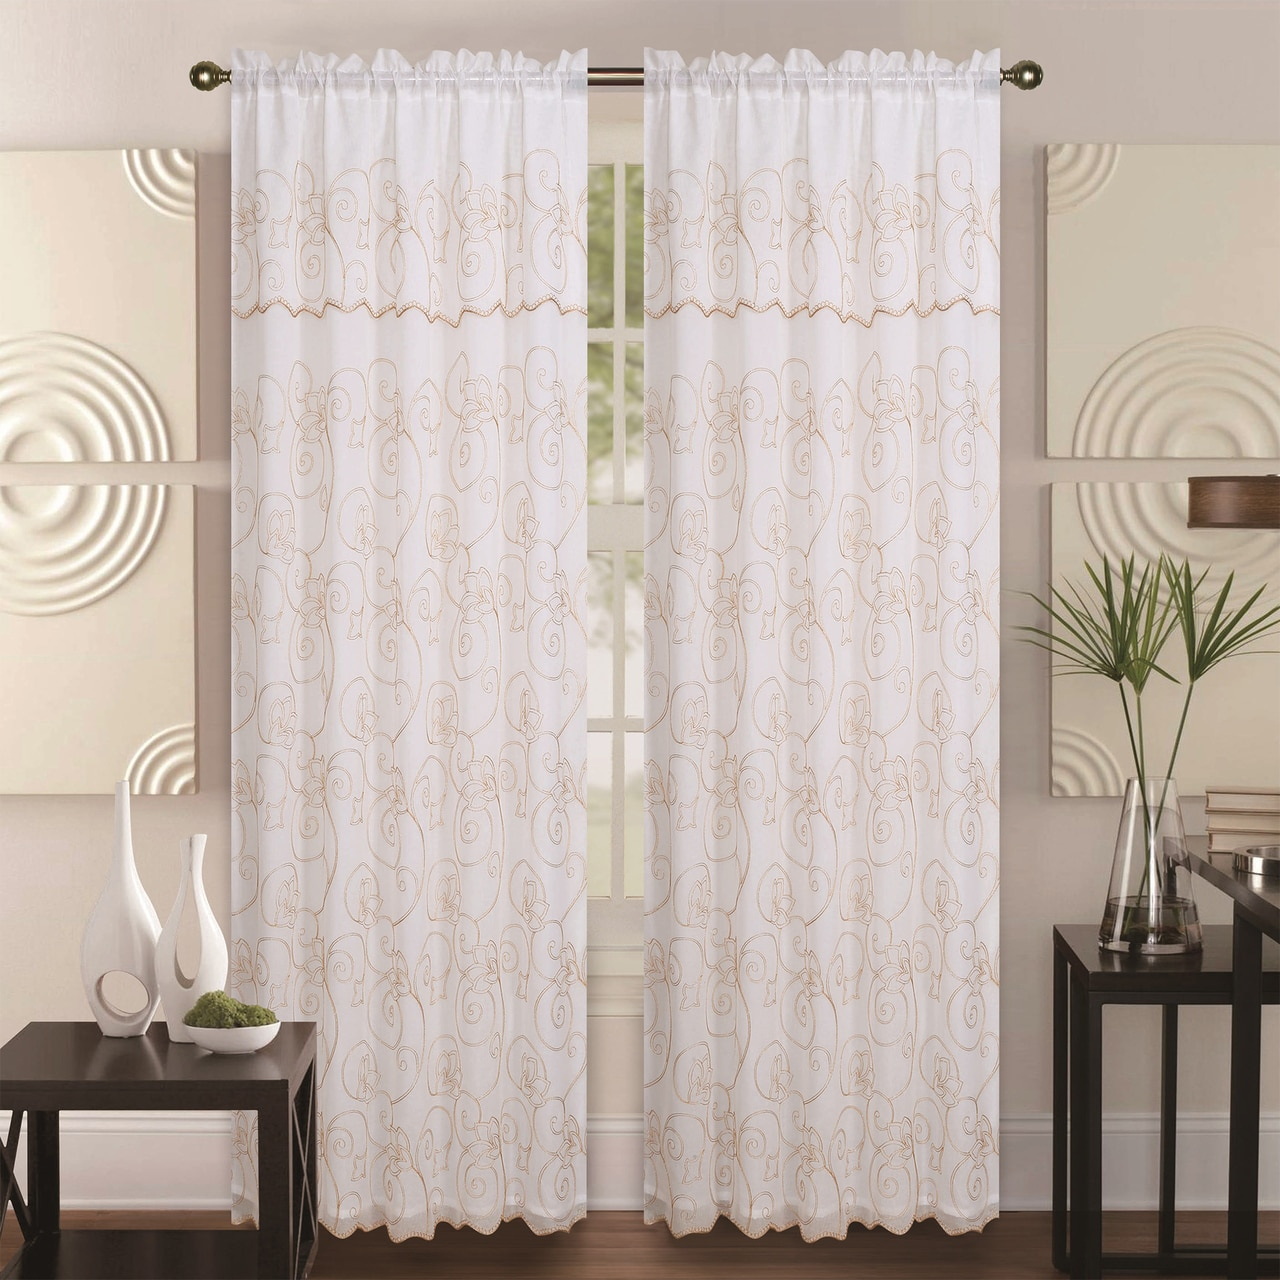 Double Layer Embroidery Floral Sheer Linen Front / Faux Silk Back Rod Pocket Valance Decorative Curtain Panel 55x84 Inch, Selma Single Drape Panel Intended For Floral Embroidered Faux Silk Kitchen Tiers (View 14 of 20)